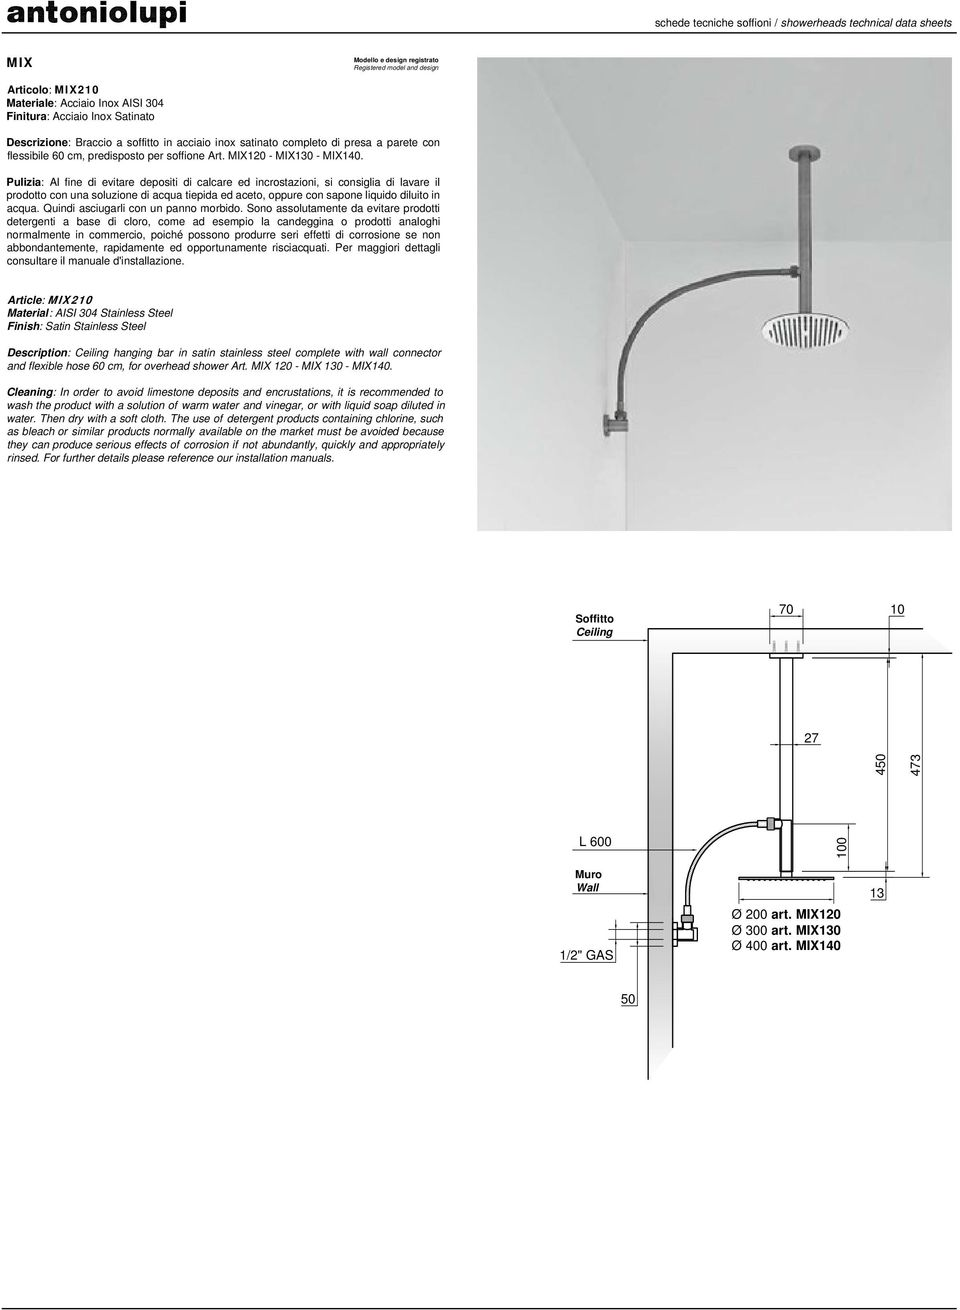 Article: 210 Description: Ceiling hanging bar in satin stainless steel complete with wall